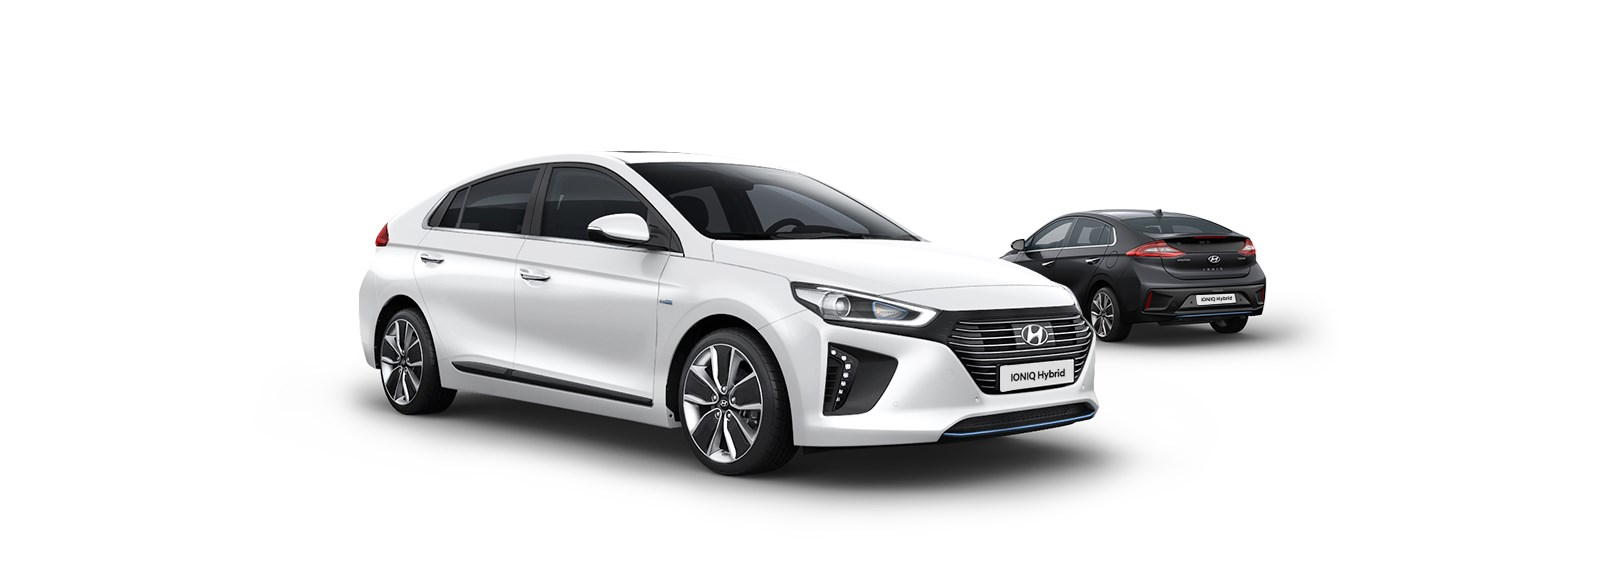 ioniq-hybrid-highlights-side-view-white-infront-black-parked-pc